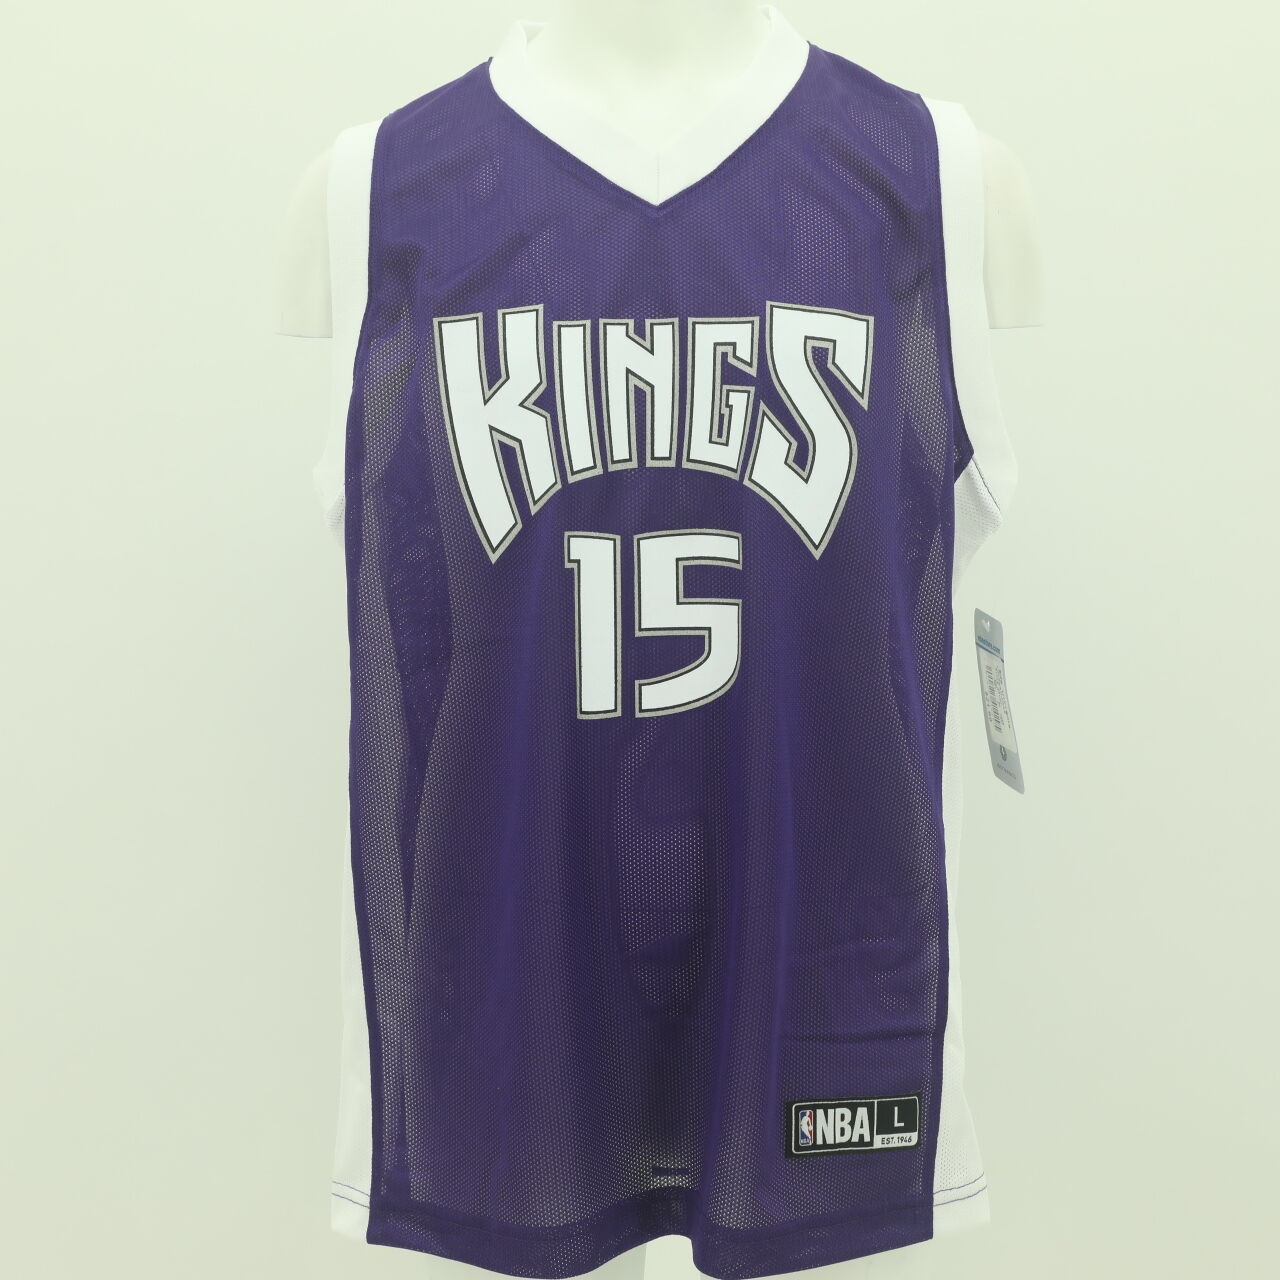 5f564f83 NBA Sacramento Kings Youth Size Jersey DeMarcus Cousins Official NBA  Merchandise